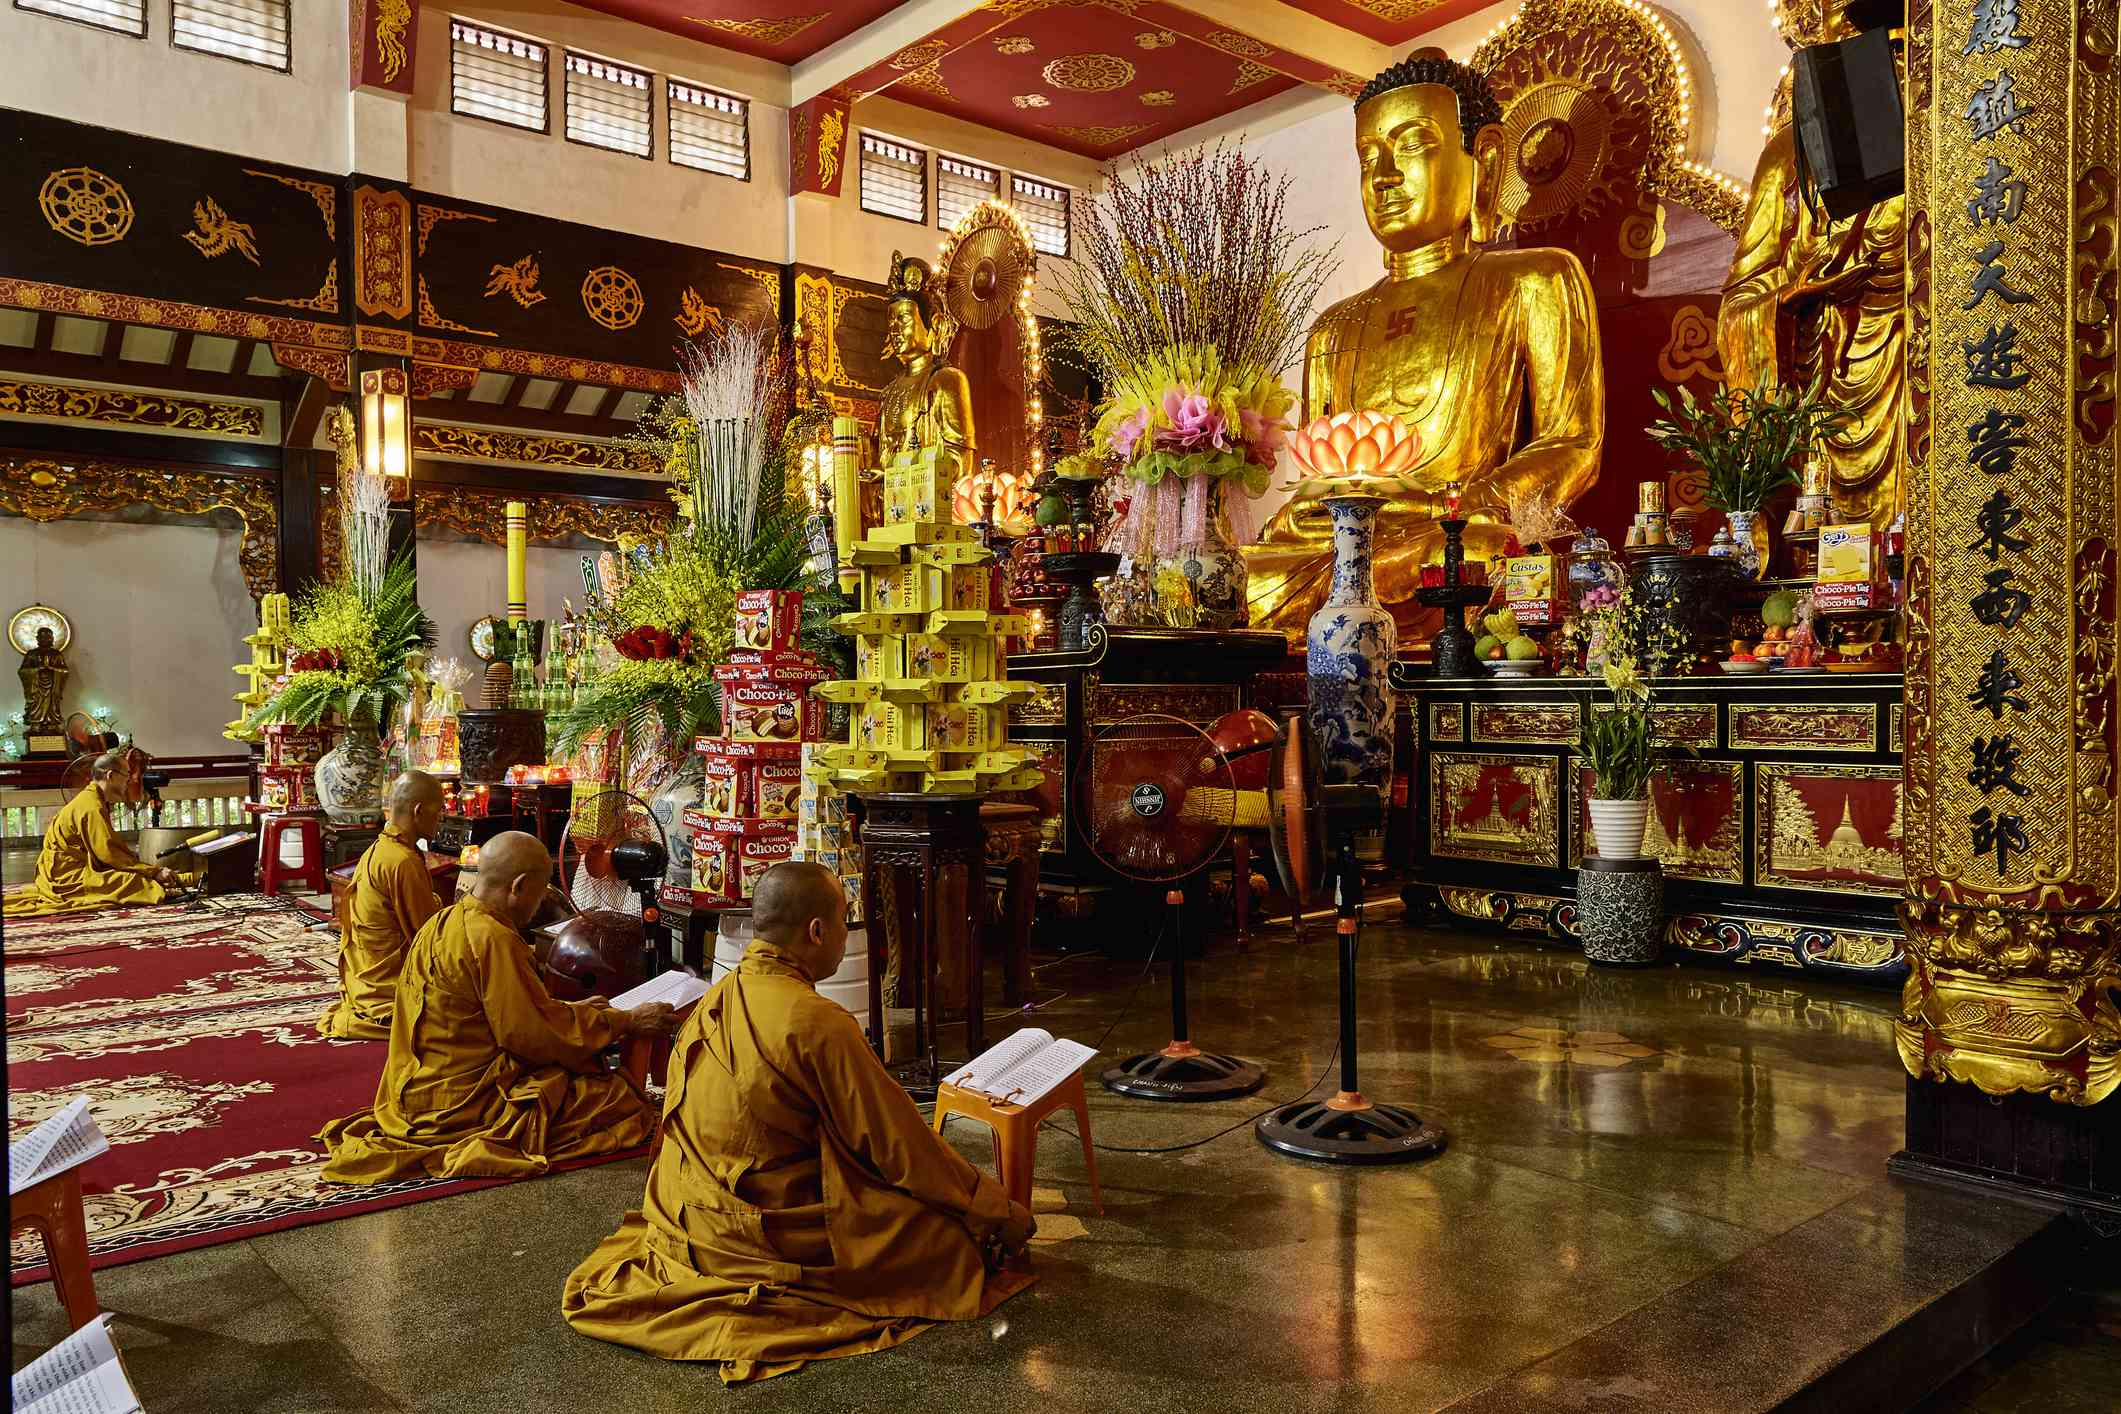 monks praying in in an ornate temple with a statue of buddha